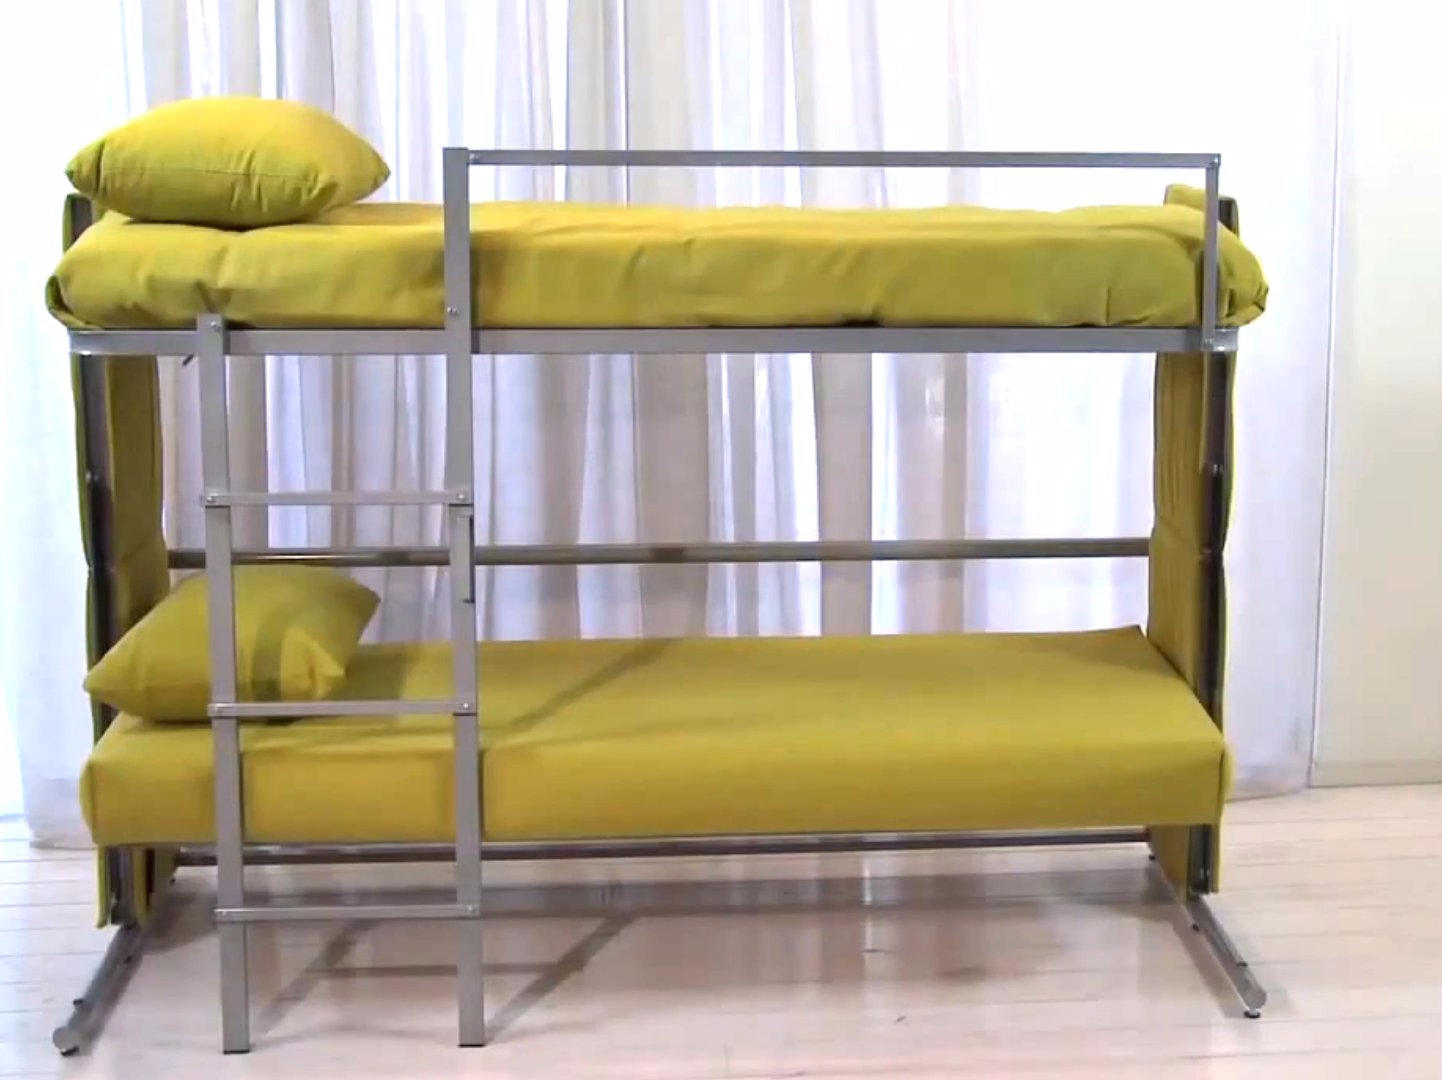 explore sofa into bunk bed twinny couch morphs into bunk bed just